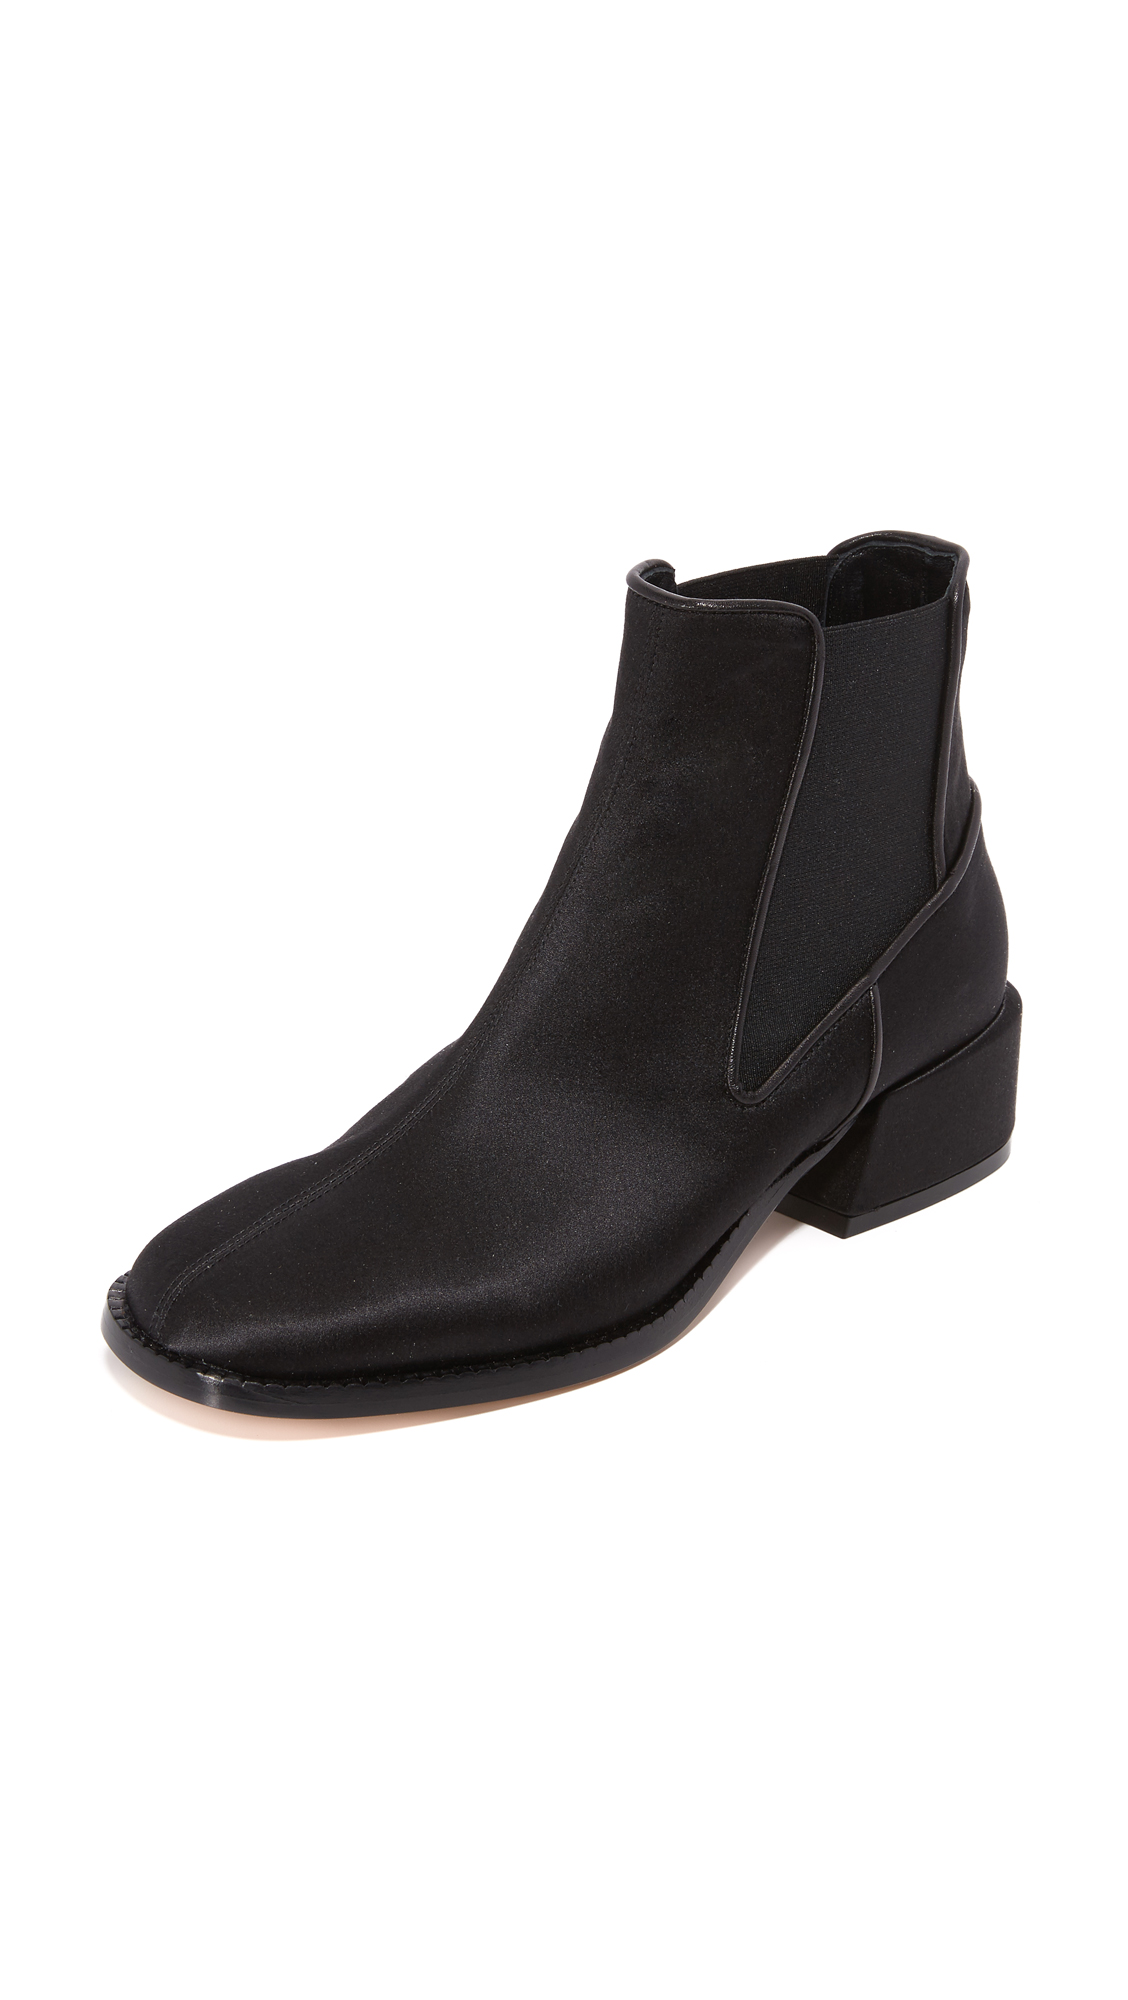 Tibi Ava Booties - Black